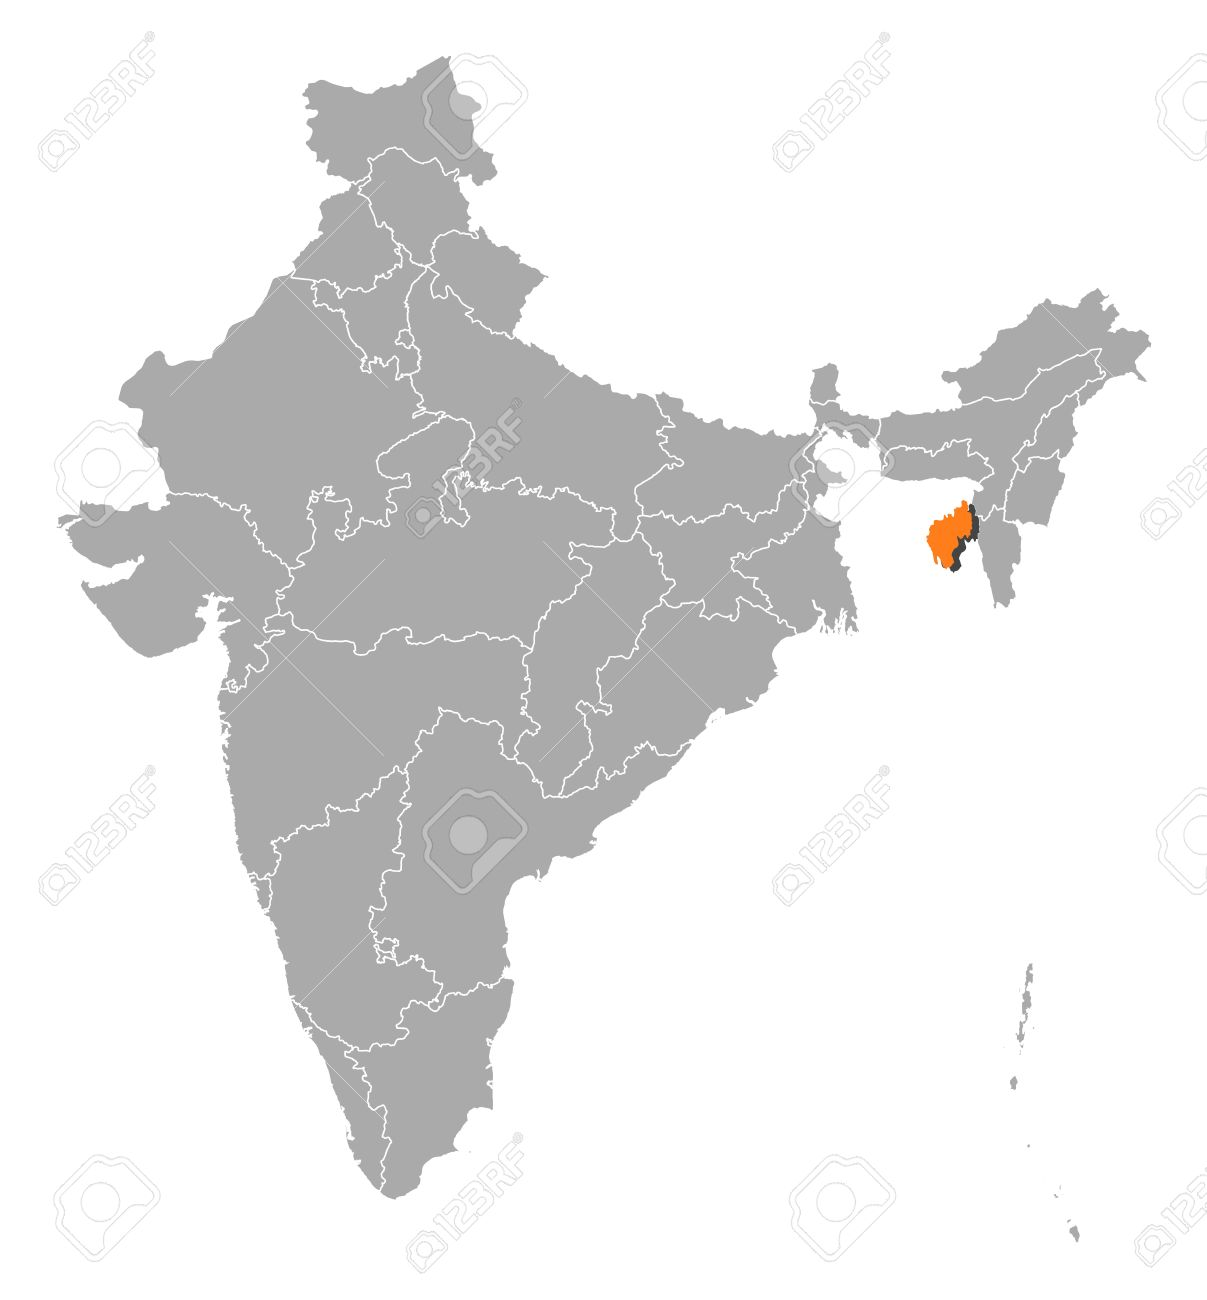 Political Map Of India With The Several States Where Tripura ...